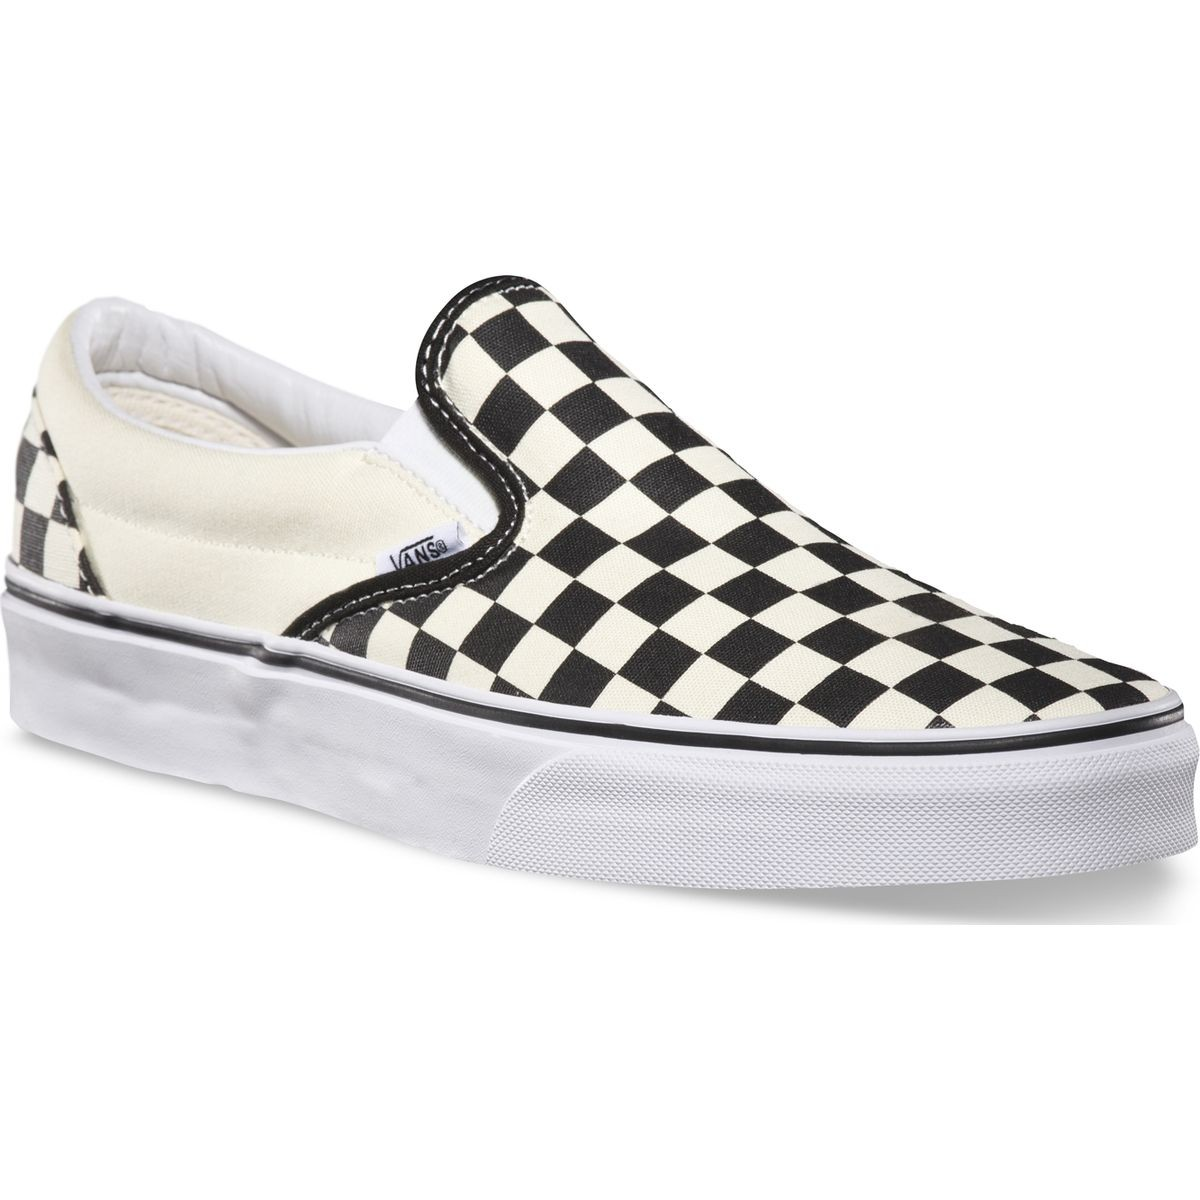 Vans Classic Slip-On Checkerboard Shoes - Black White - 8.0 a22e71cf8